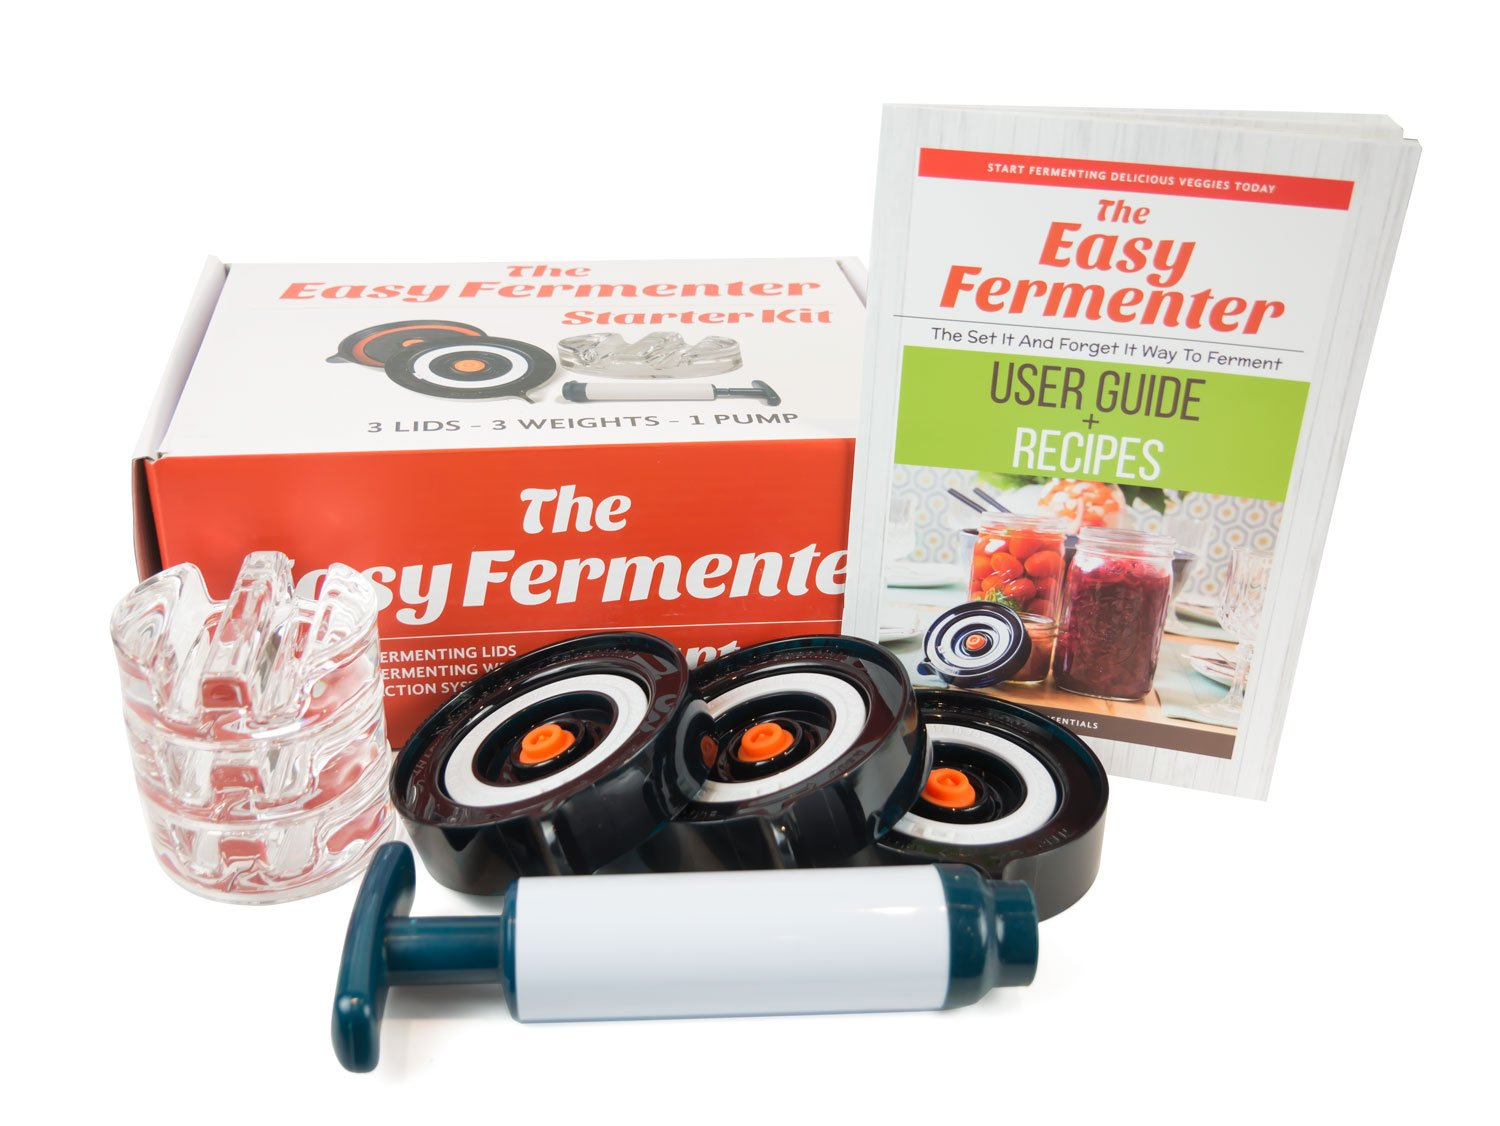 Easy Fermenter Wide Mouth Lid Kit: Simplified Fermenting In Jars Not Crock Pots! Make Sauerkraut, Kimchi, Pickles Or Any Fermented Probiotic Foods. 3 Lids, Extractor Pump & Recipe eBook - Mold Free Nourished Essentials EF-1